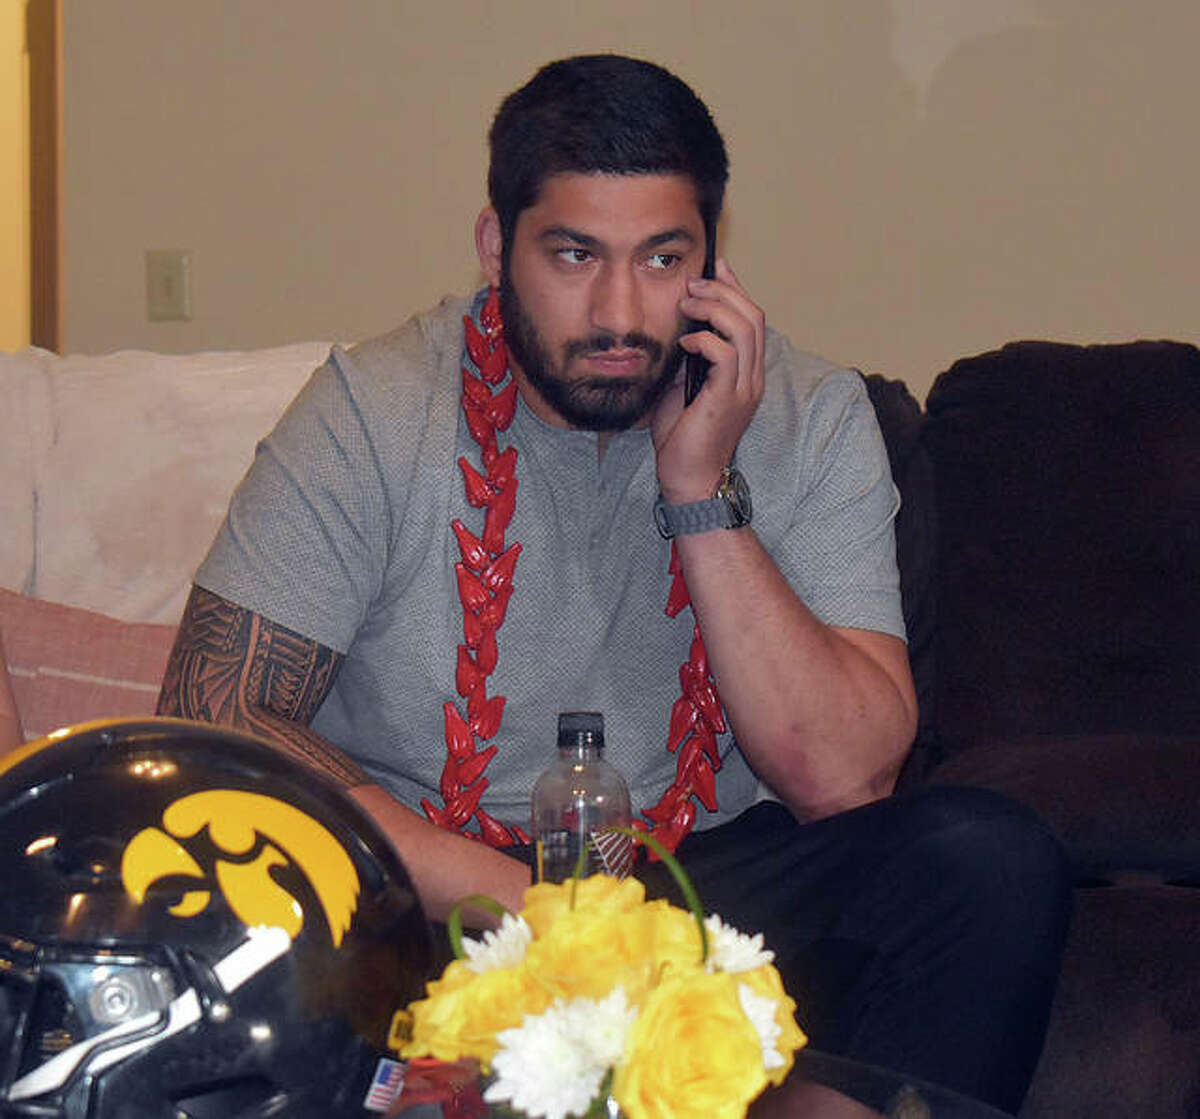 AJ Epenesa on the phone with the Buffalo Bills management team prior to its announced on ESPN that he's being selected with the 54th overall pick in the NFL Draft.